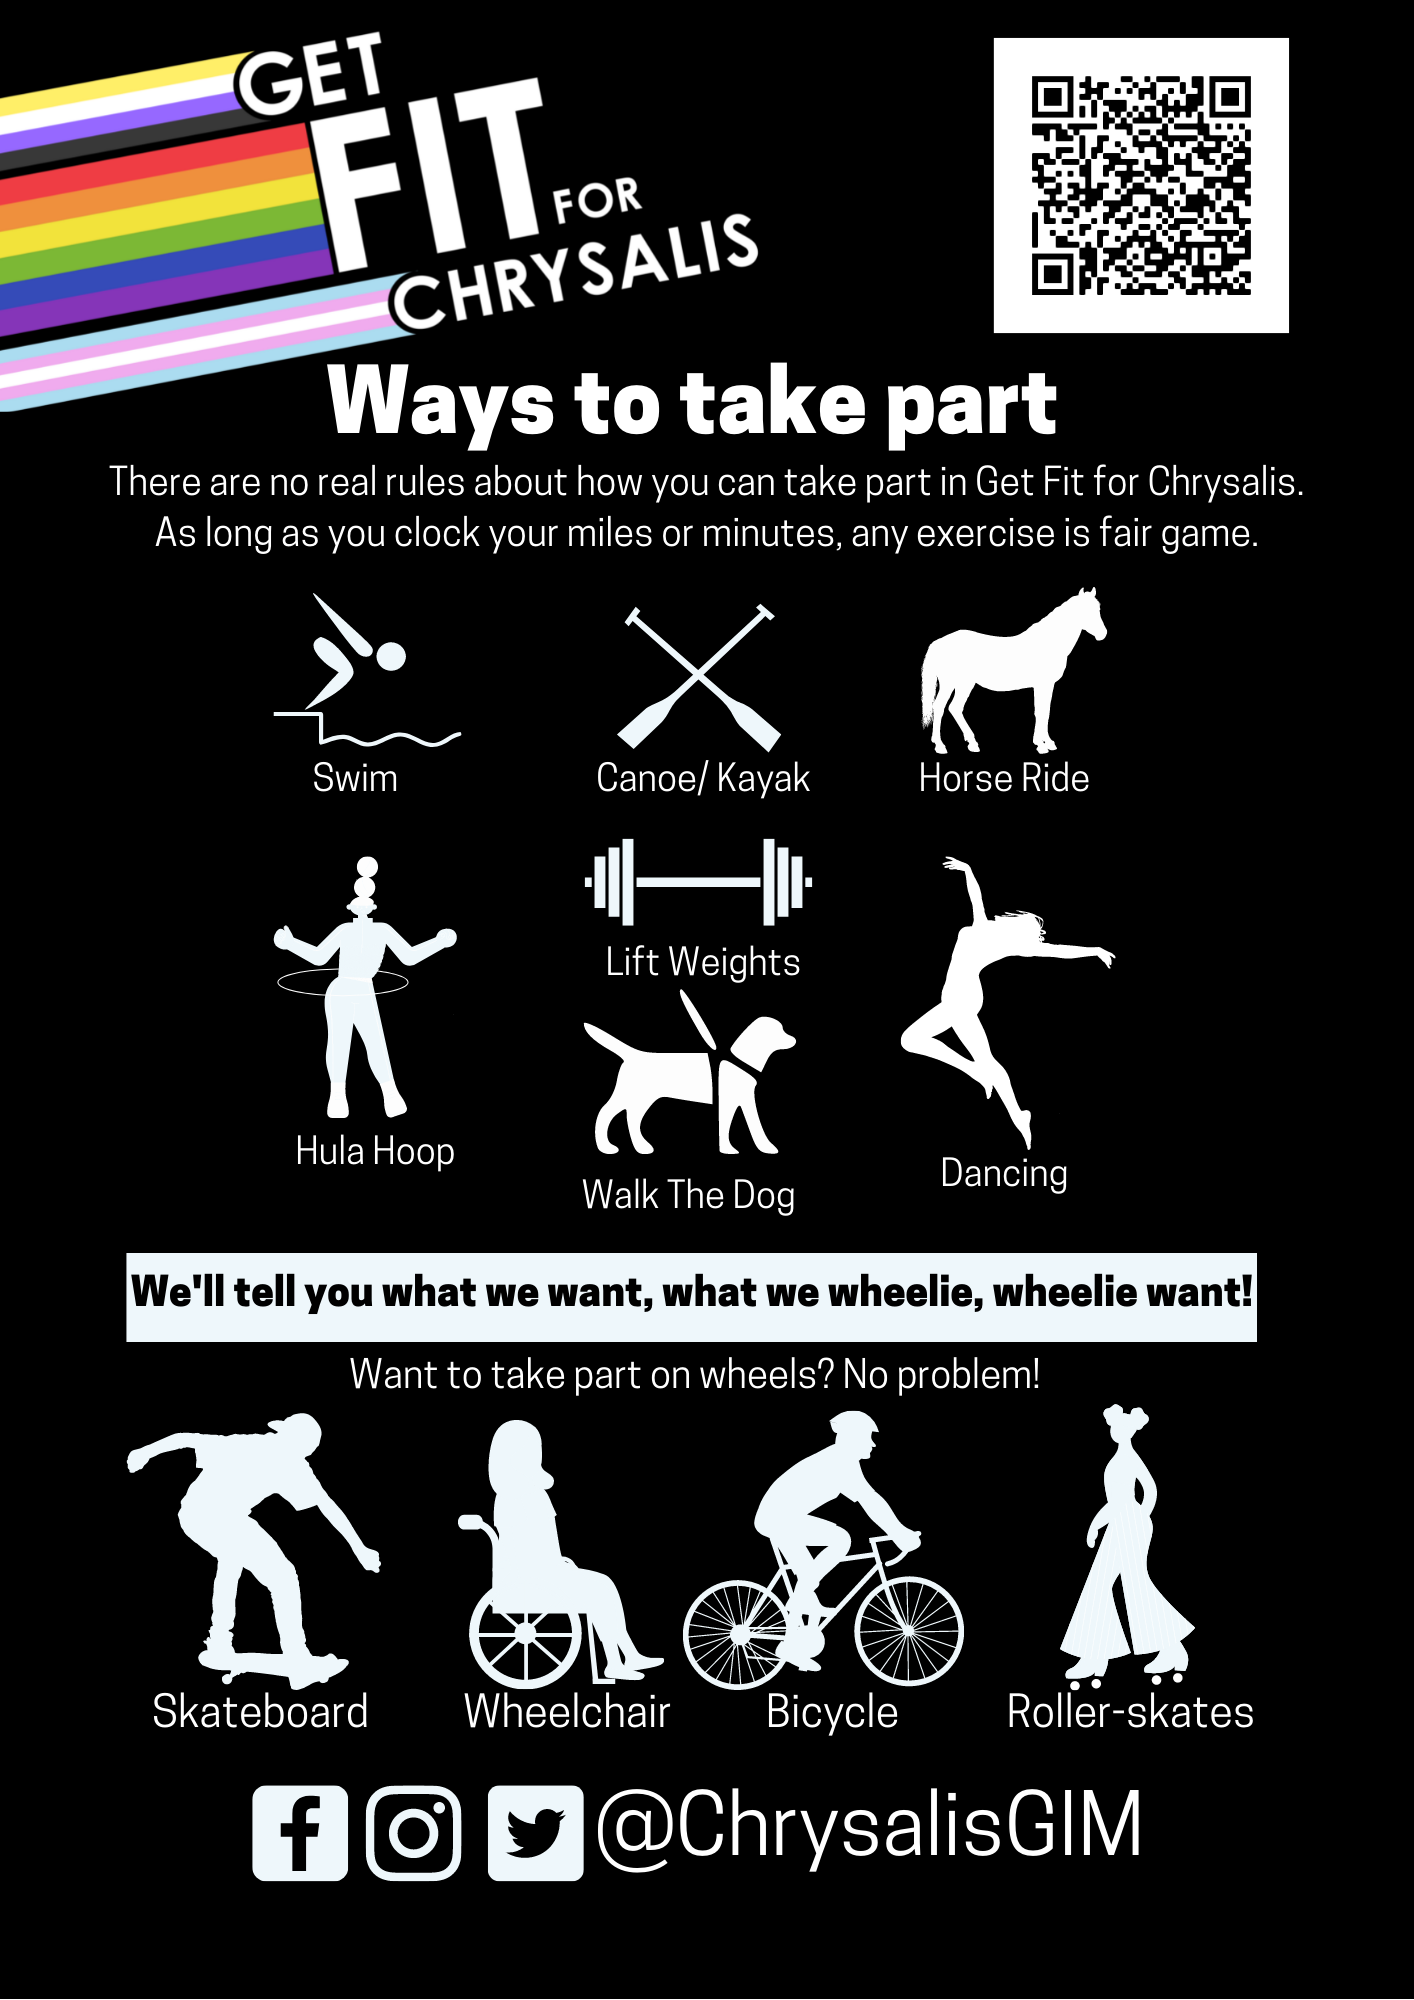 Get Fit for Chrysalis poster. White symbols of different forms of exercise on a black background. Contact us to find out more.